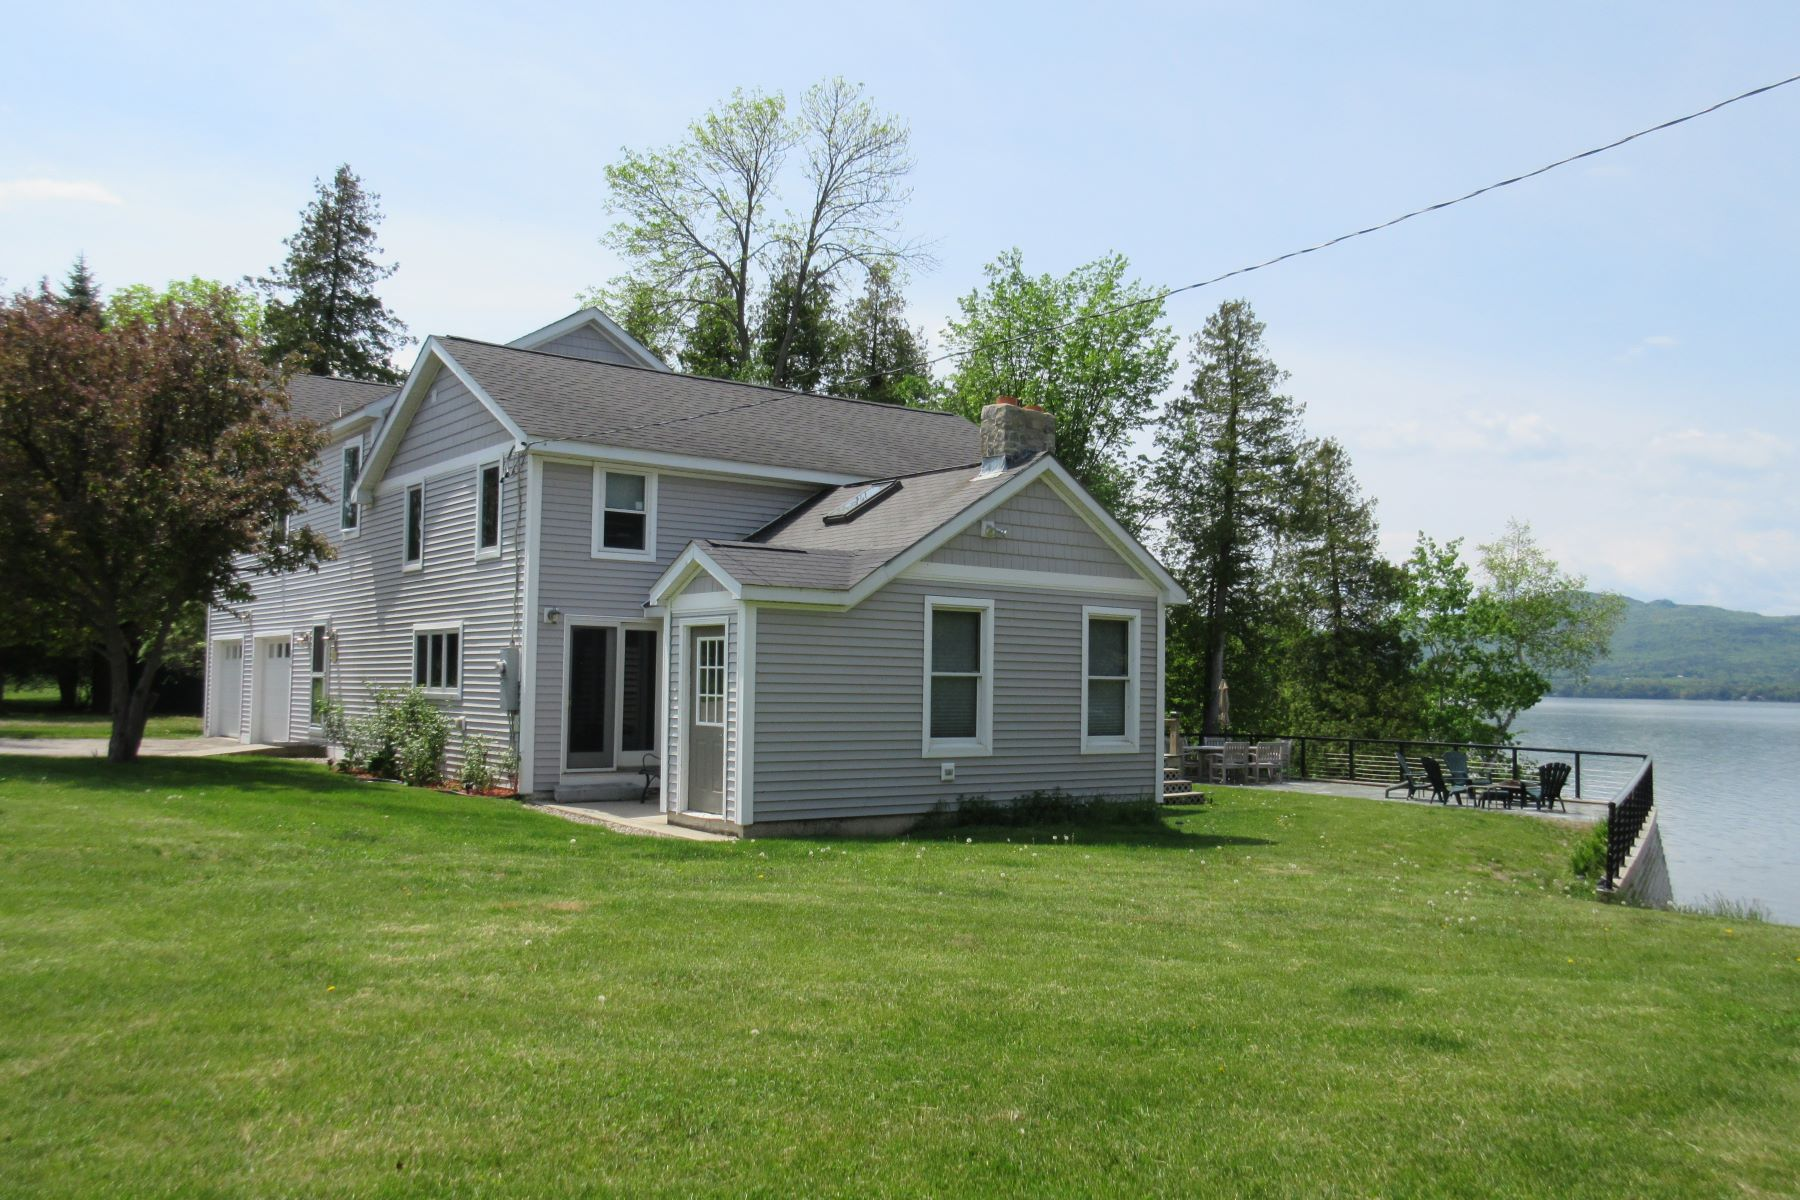 Single Family Home for Sale at 246 Staton Drive, Panton Panton, Vermont, 05491 United States